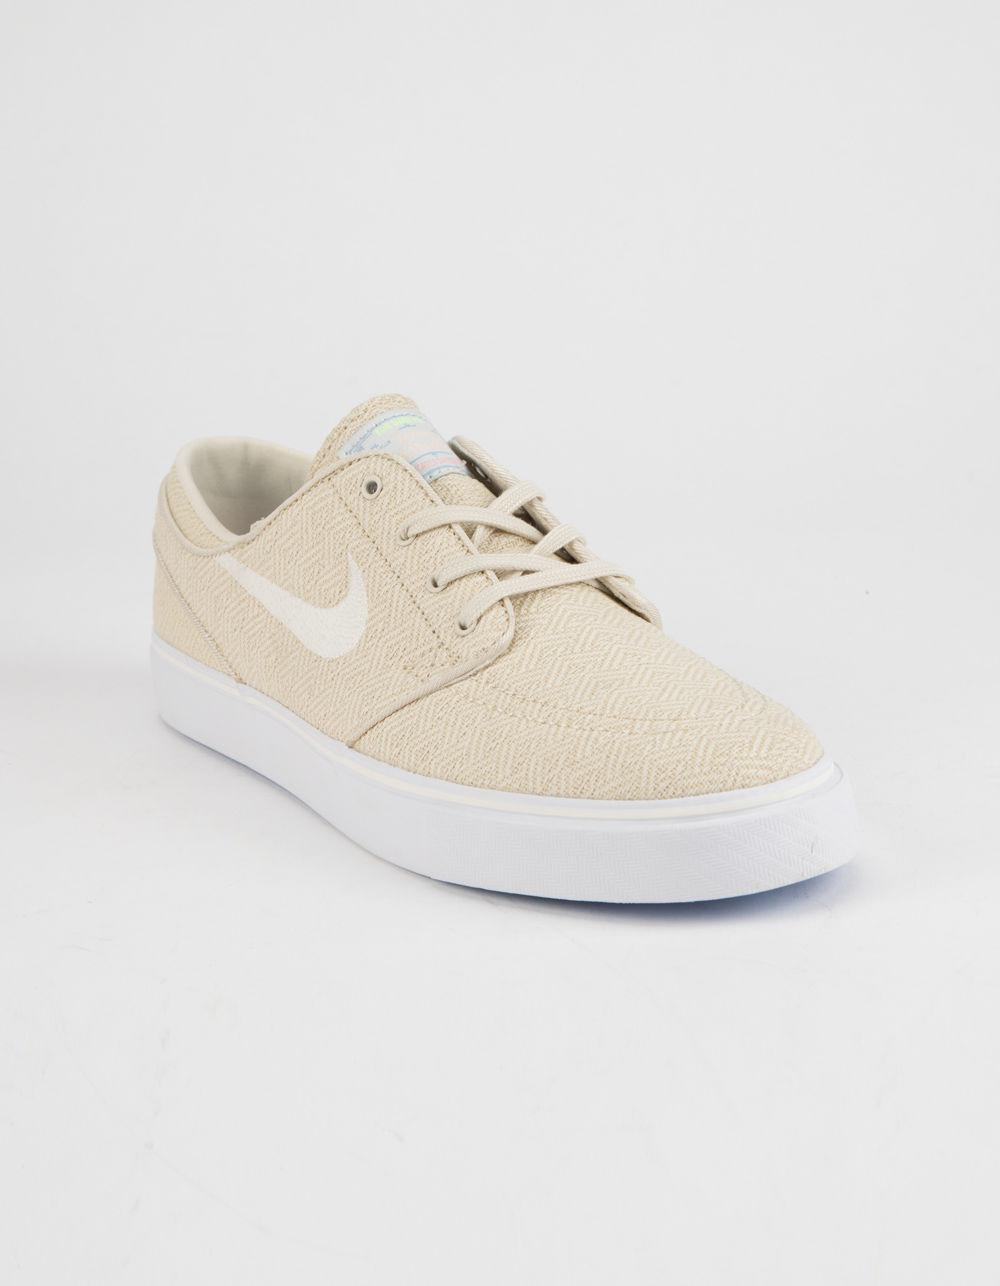 6ff00fe3e97410 Lyst - Nike Zoom Stefan Janoski Canvas Fossil   Sail White Mens Shoes in  White for Men